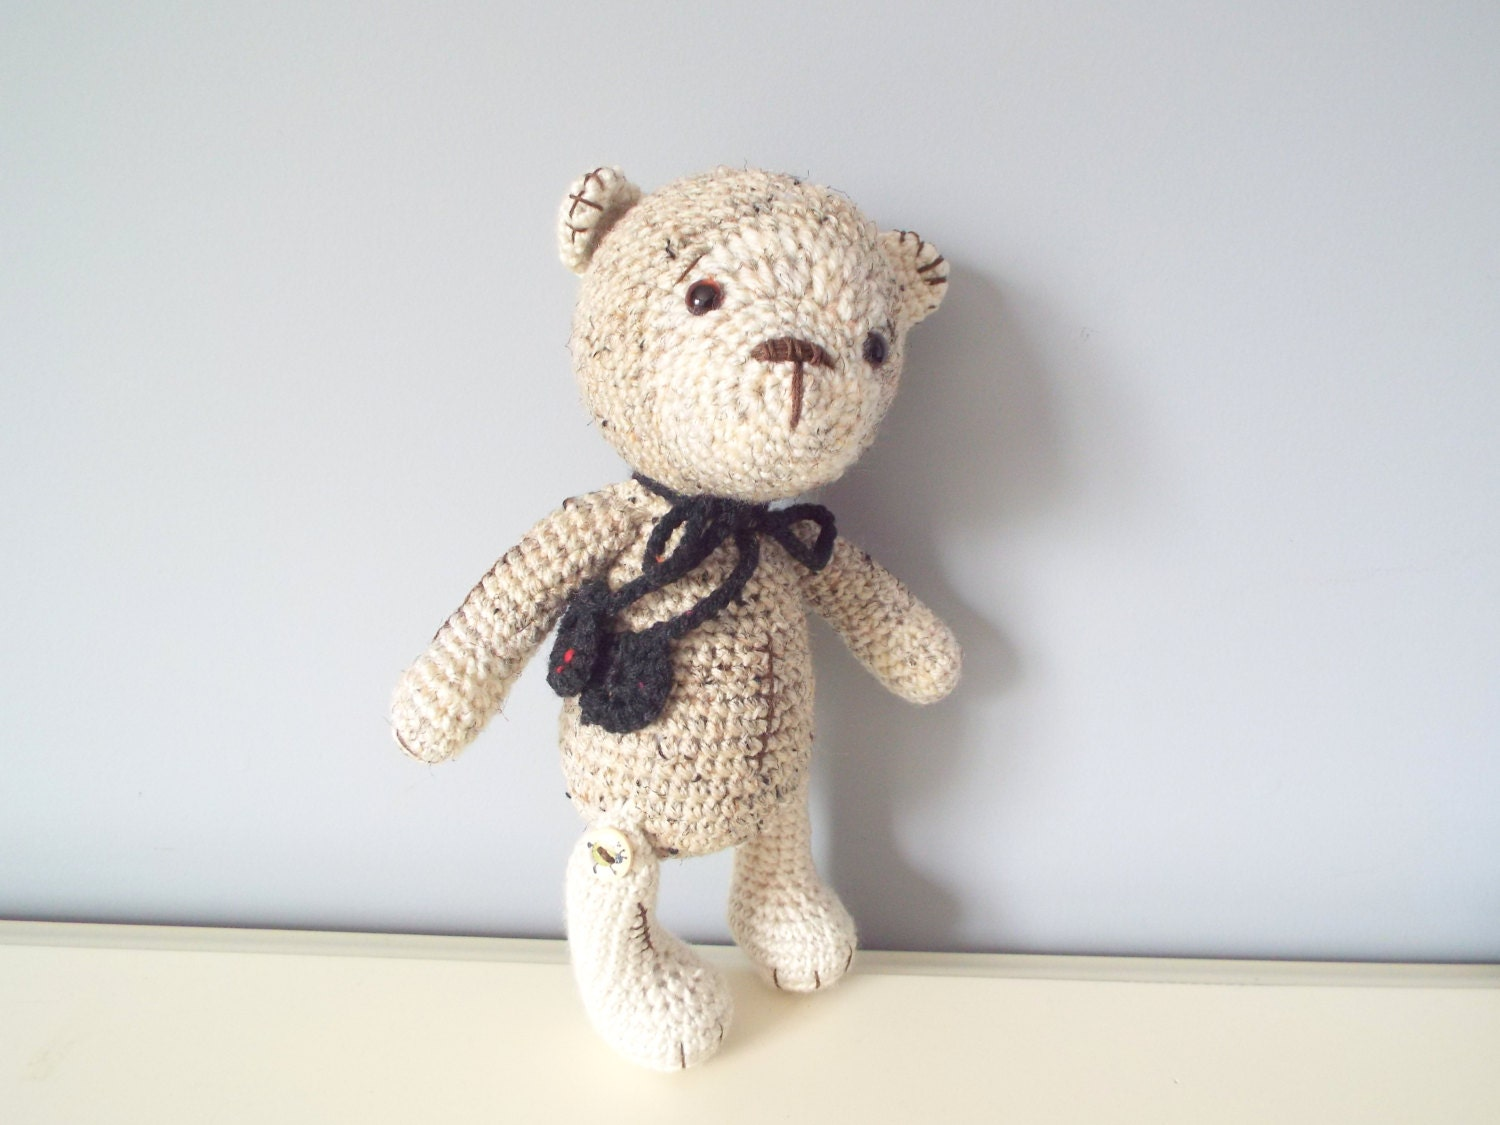 Amigurumi Baby Shower Bears : Handmade crochet Teddy bear Amigurumi doll Home decor Baby ...